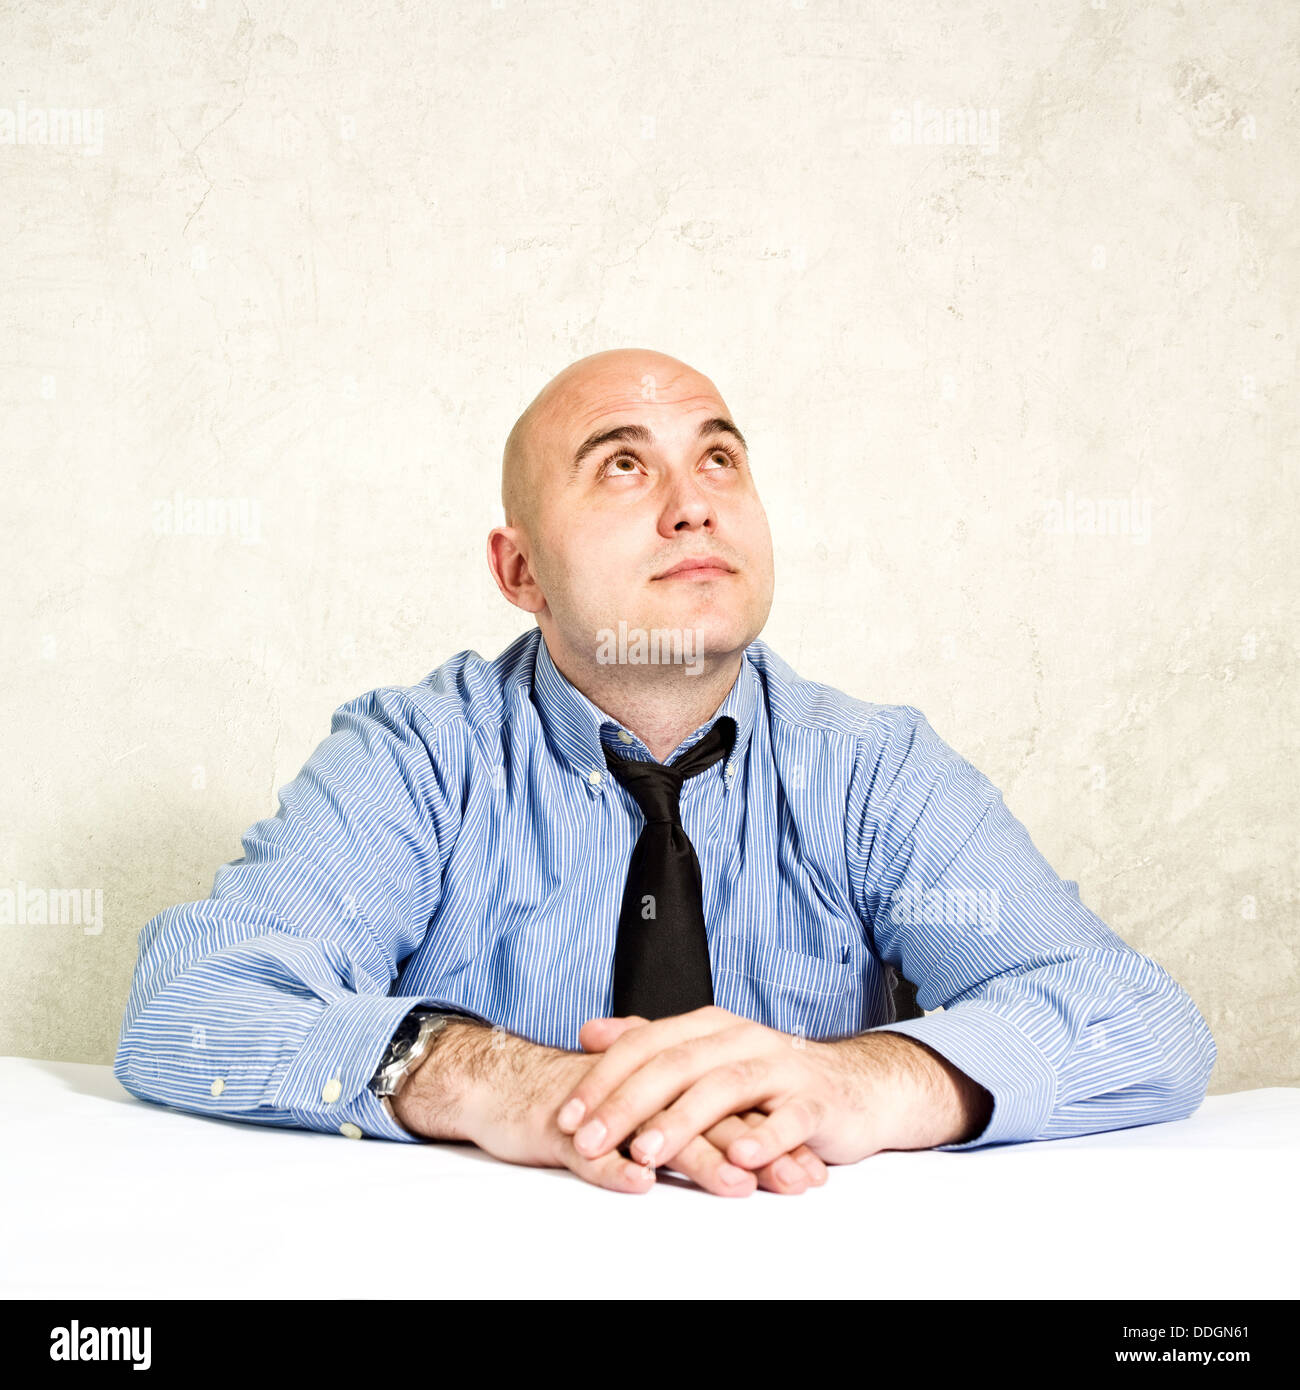 Businessman thinking, business choice or making decision. Businessman looking up. - Stock Image